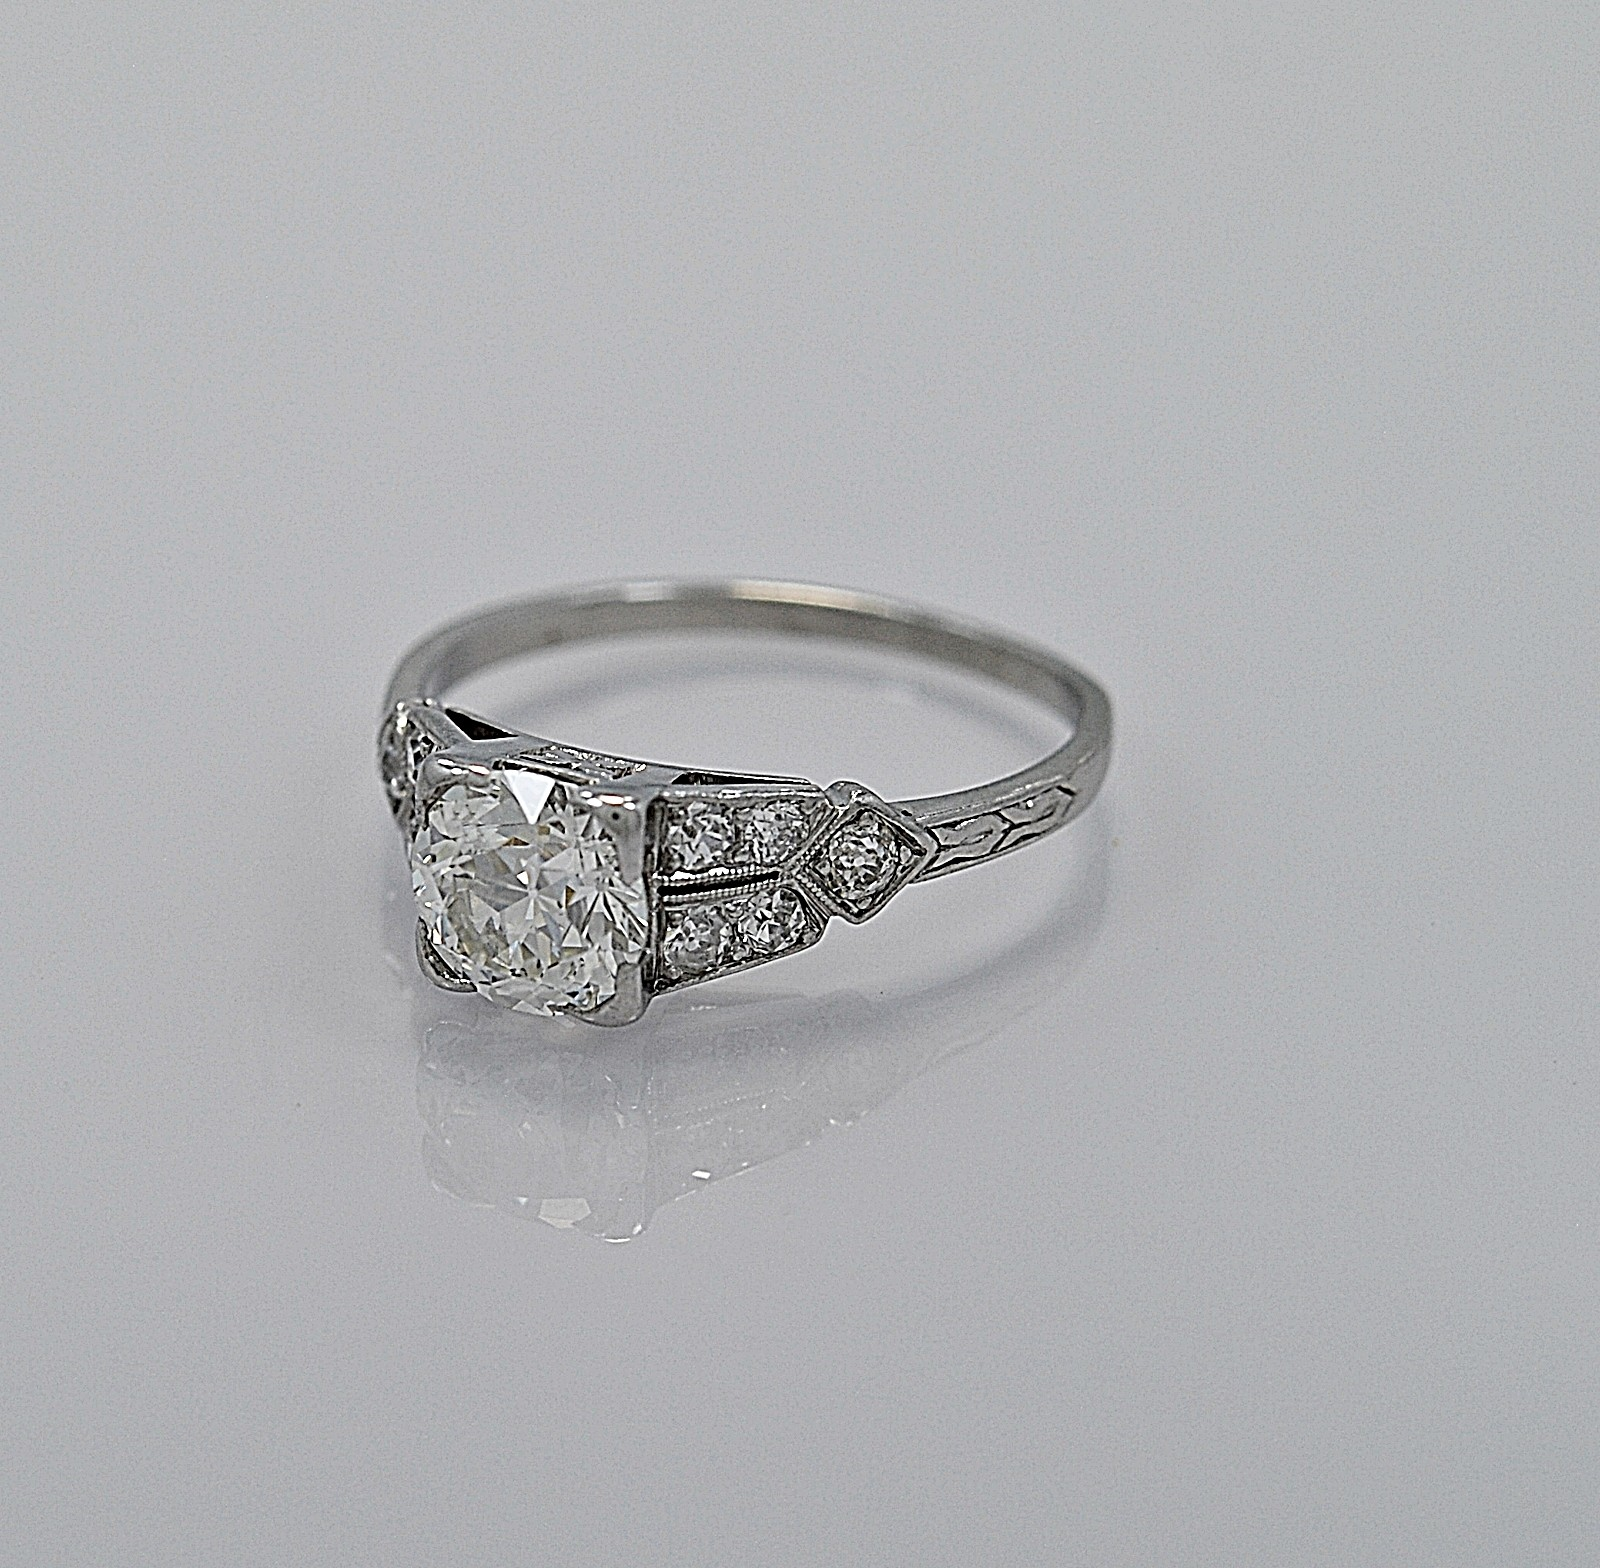 116ct-diamond-platinum-art-deco-engagement-ring